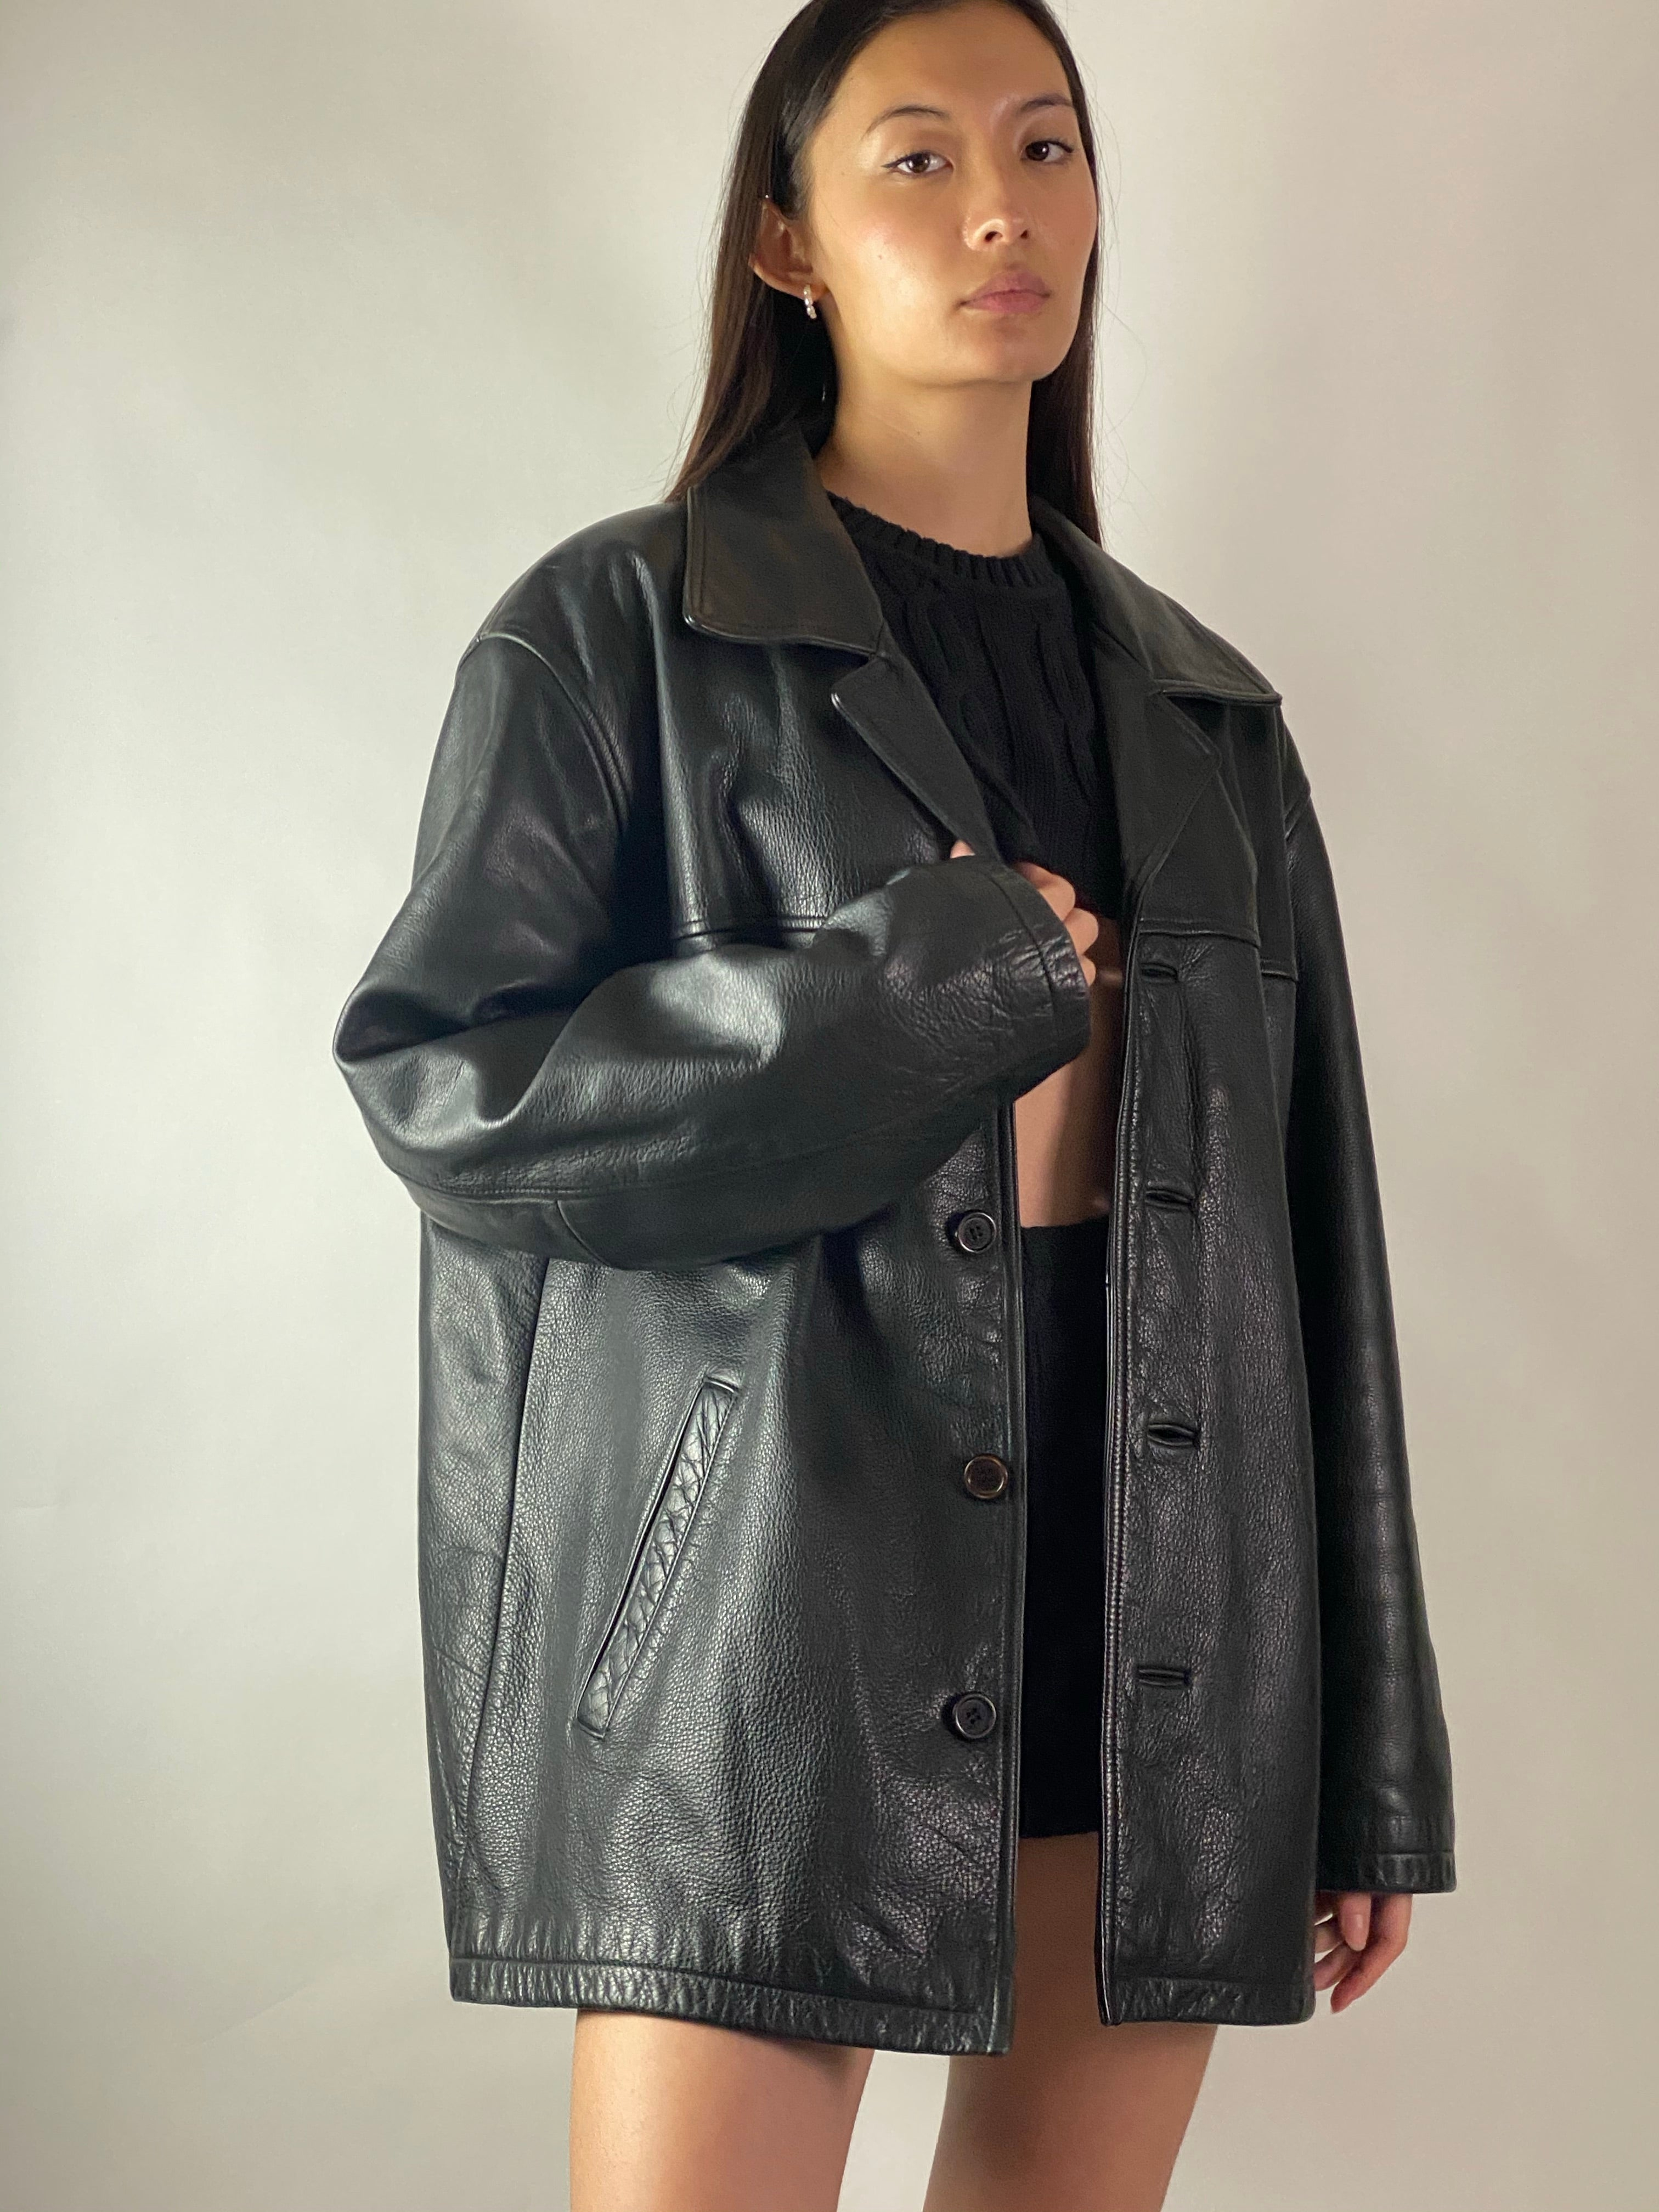 Vintage leather blazer jacket